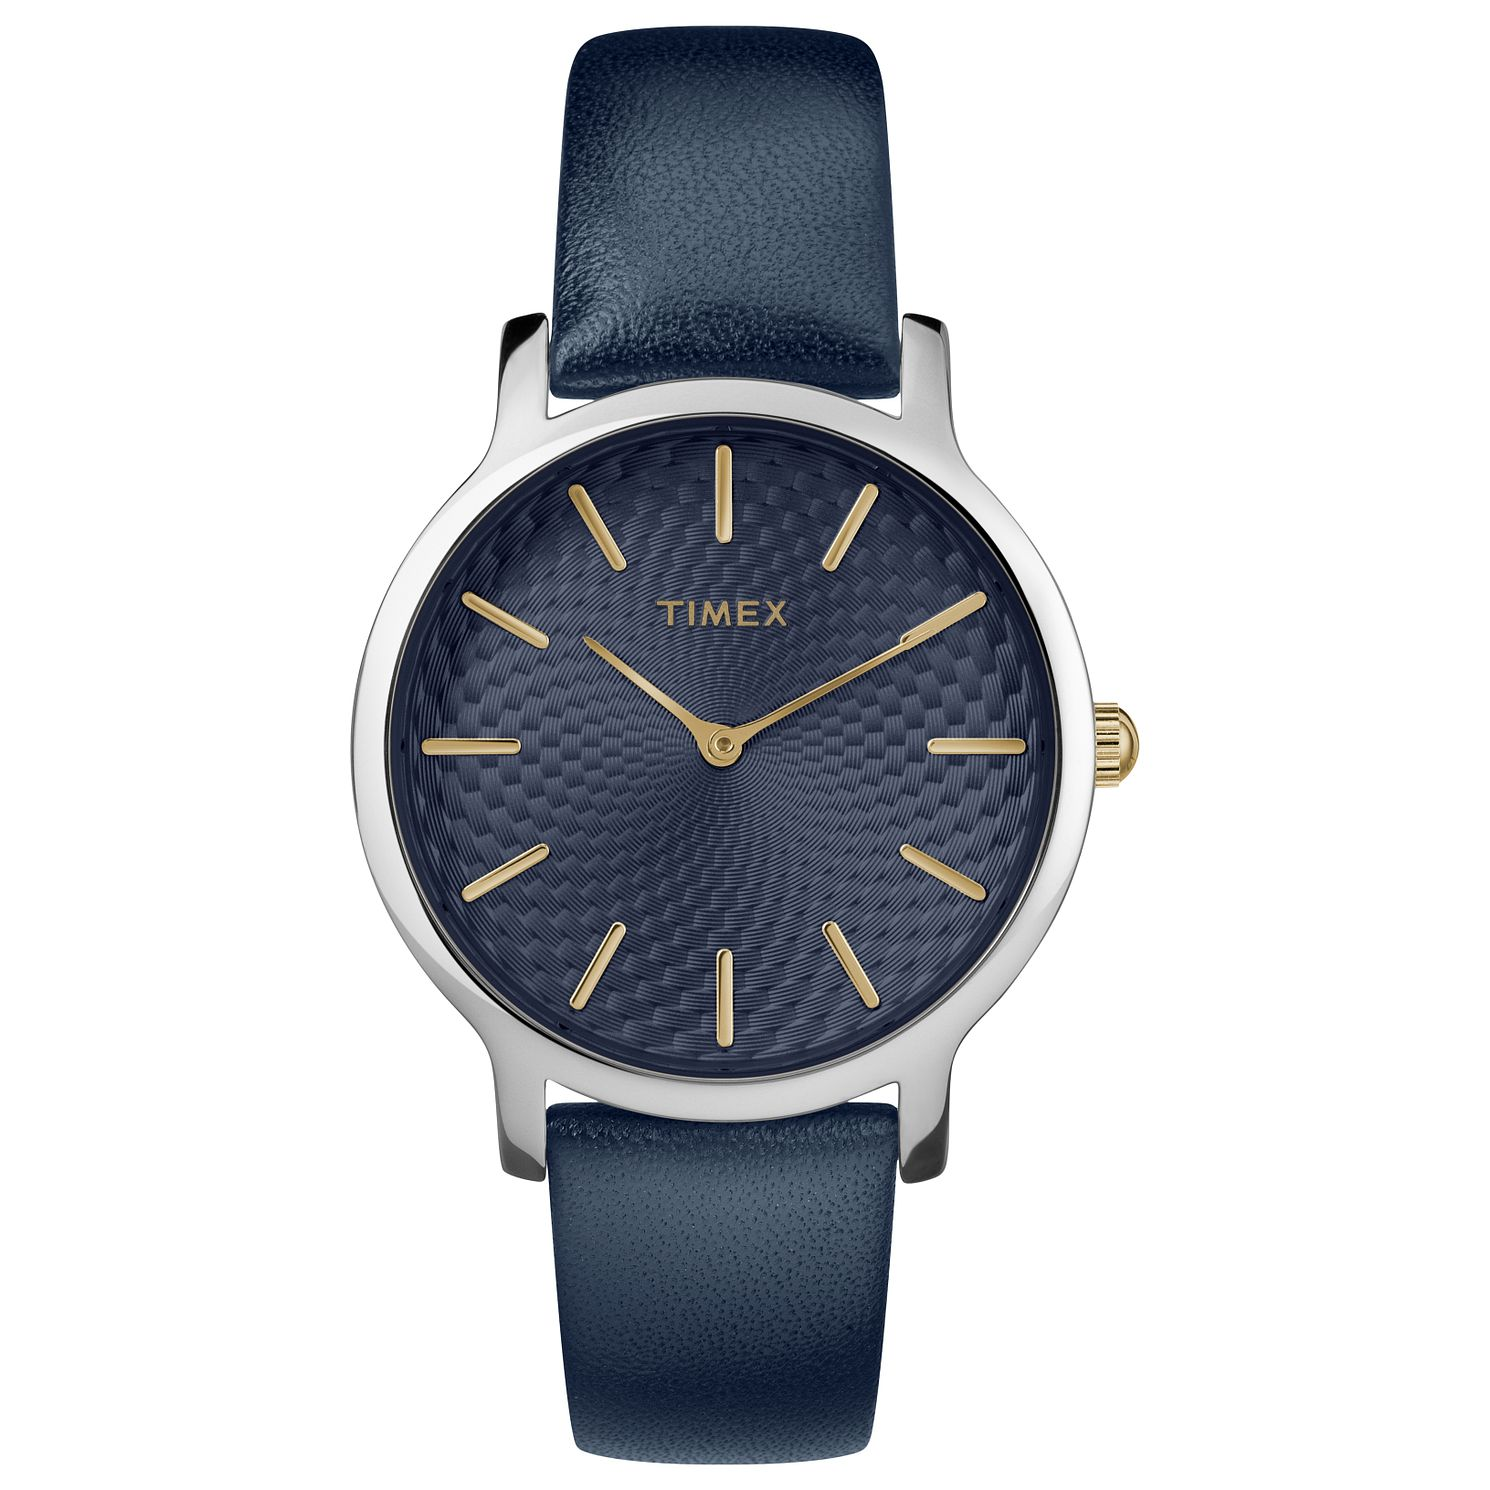 Timex Ladies' Blue Leather Strap Watch - Product number 8140022